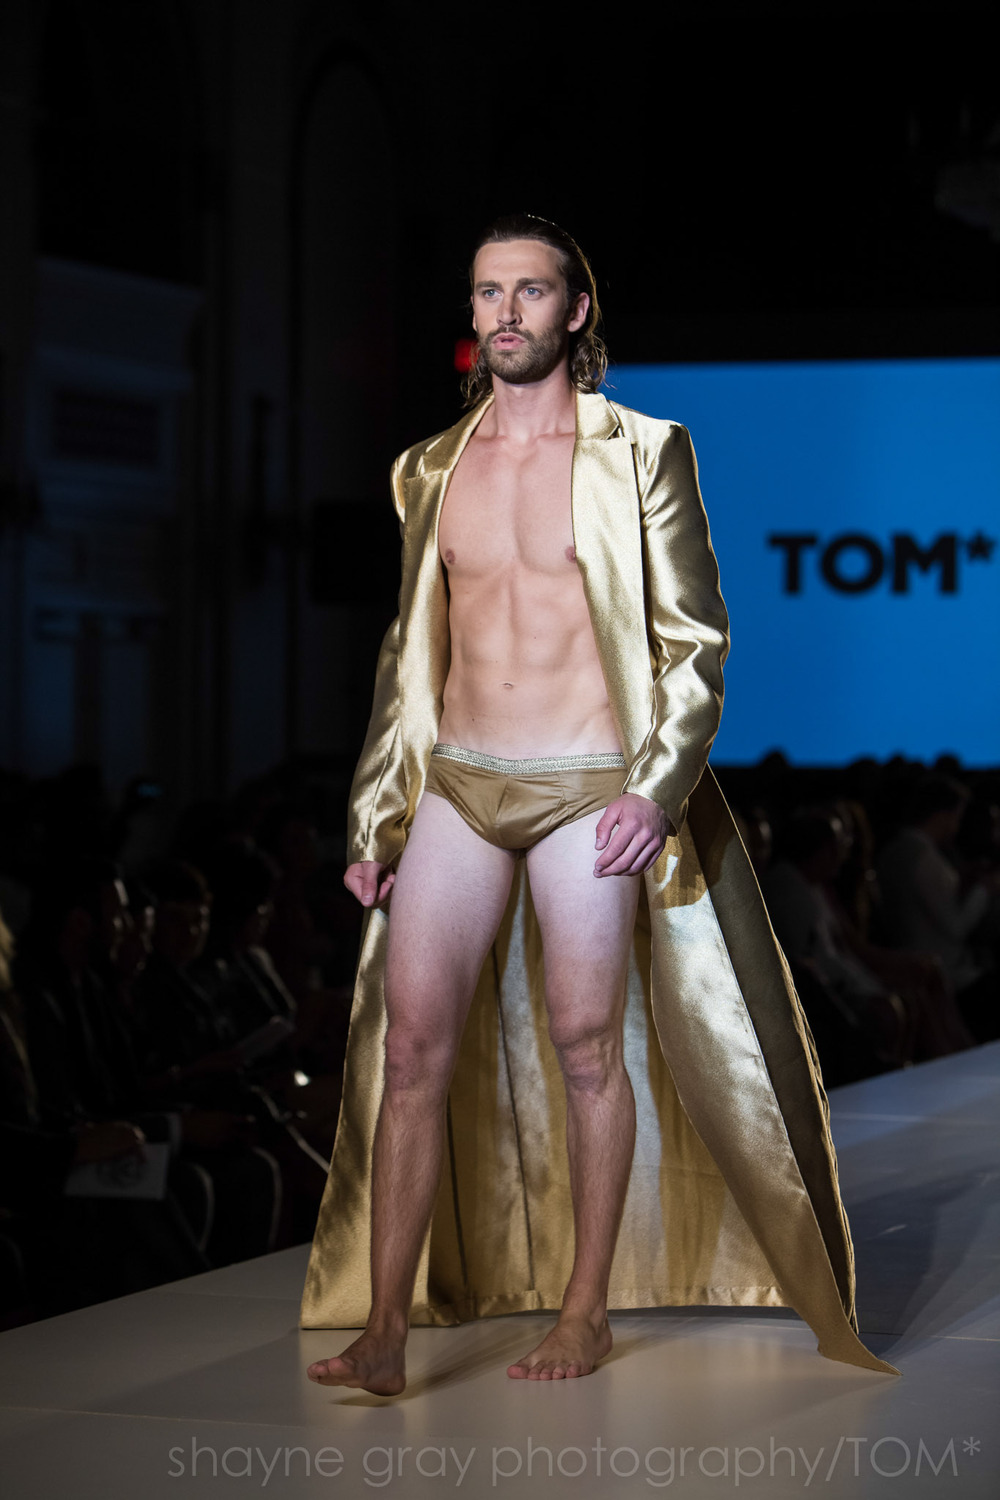 Shayne-Gray-Toronto-men's-fashion_week-TOM-paul-nathaphol-7930.jpg